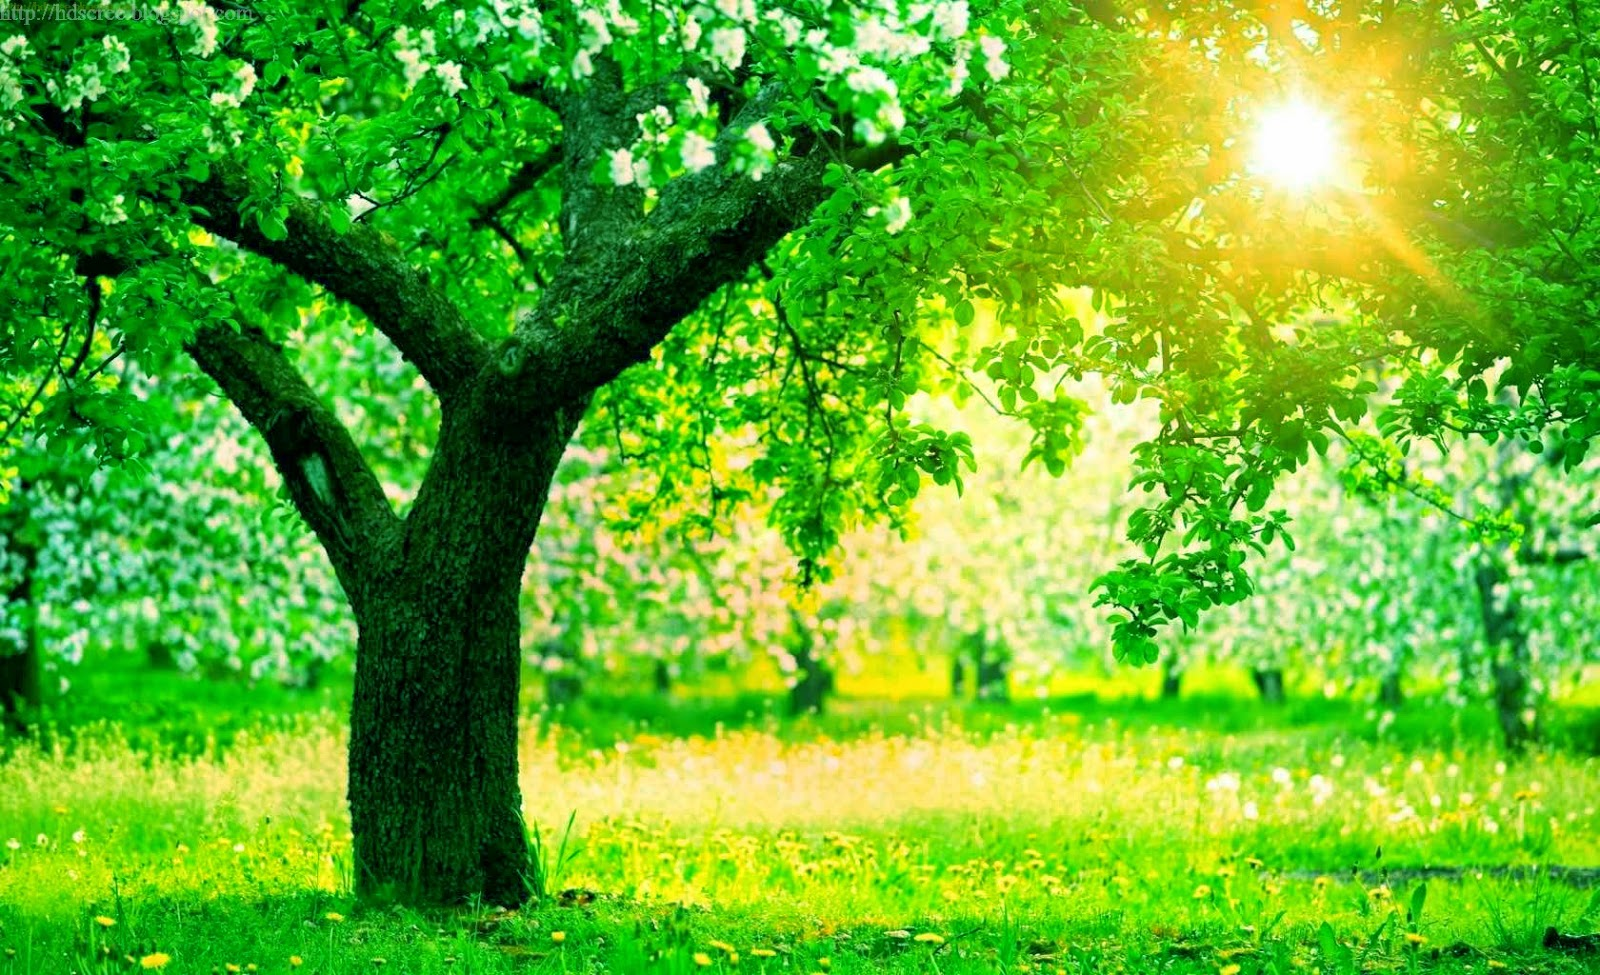 Hd Wallpaper Hd Screensaver Hd Background Hd Screensaver Collection Of Green Tree